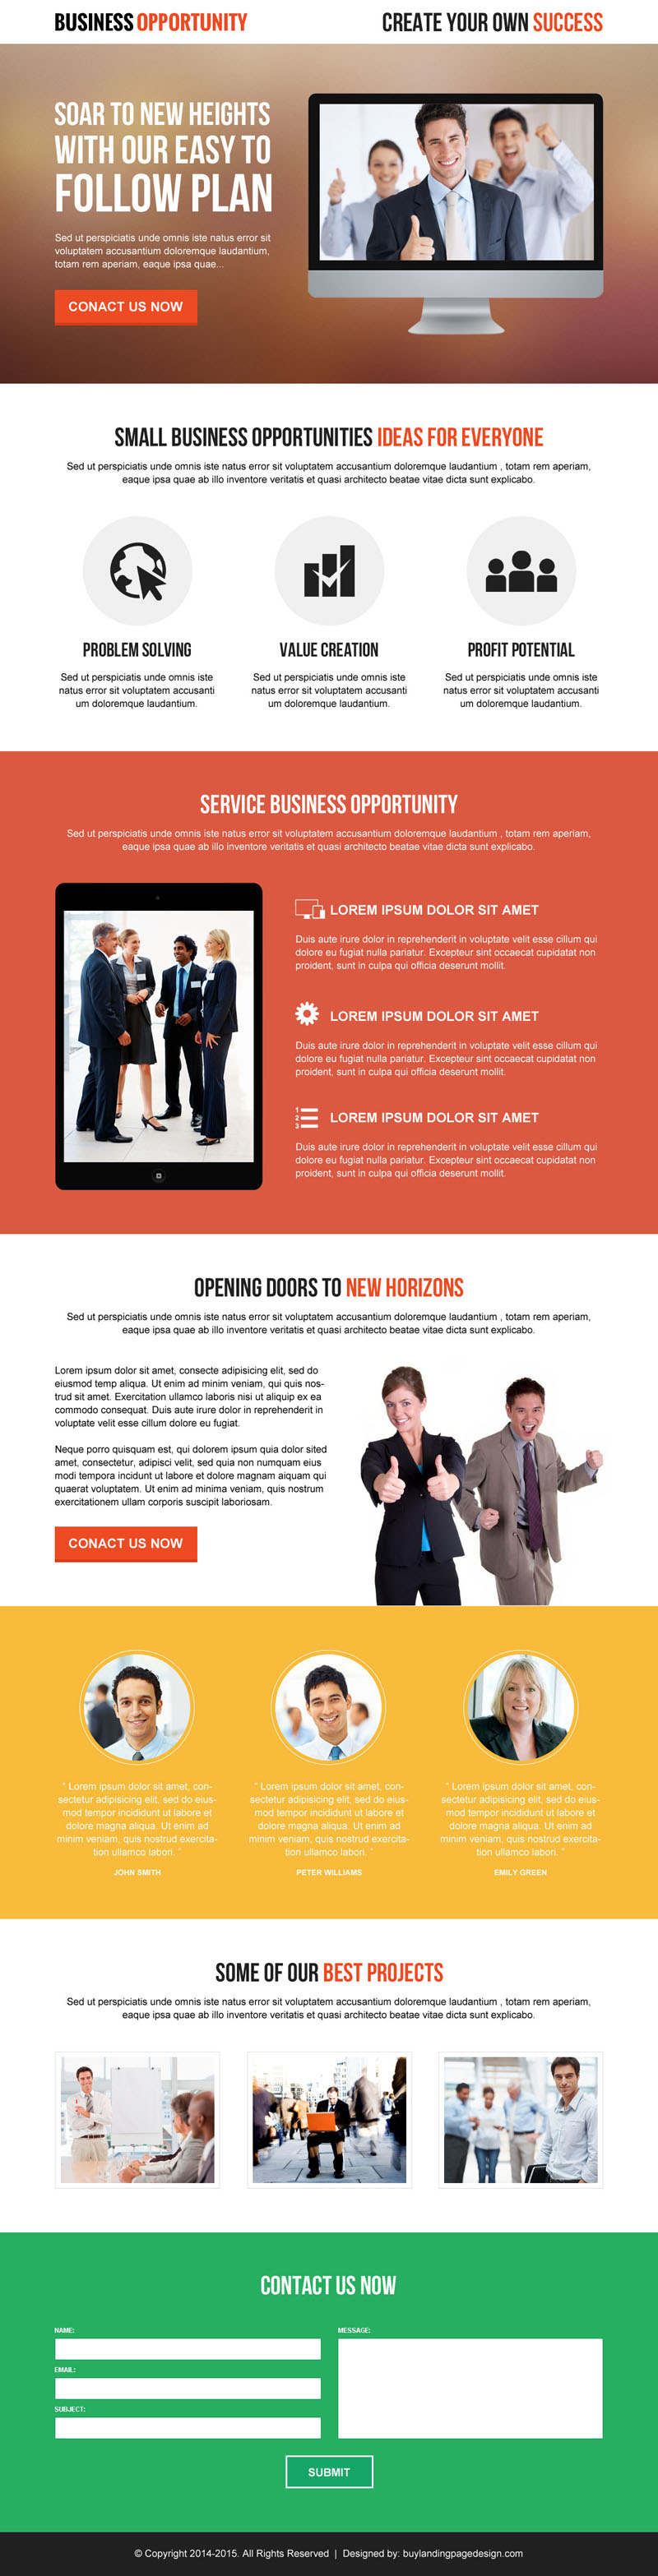 corporate-business-solutions-cta-landing-page-design-templates-to-boost-your-new-business-027